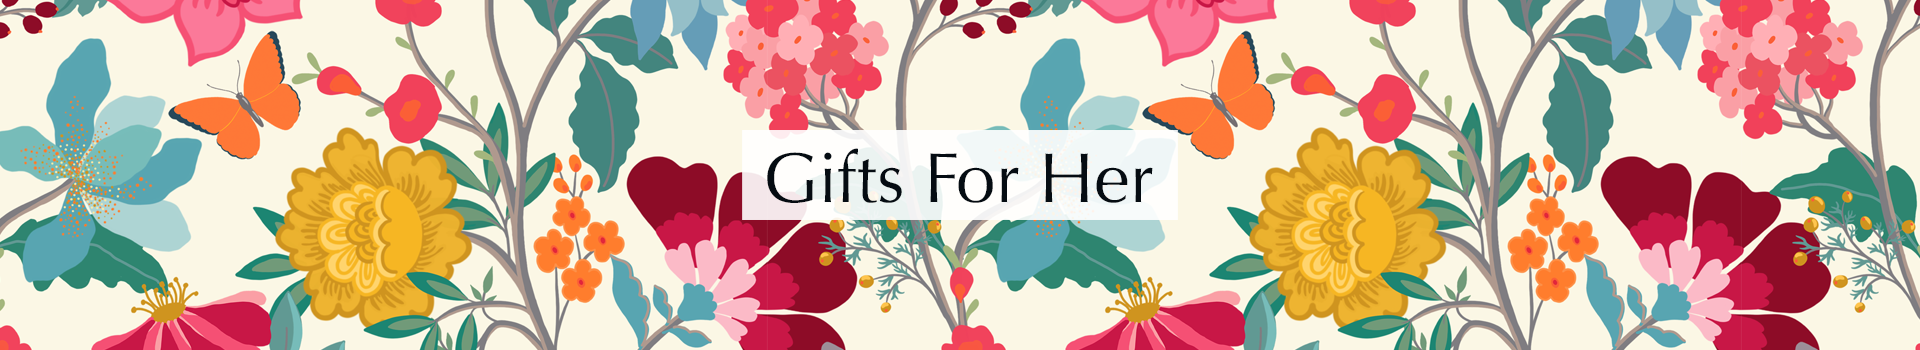 gifts-for-her-copy.png